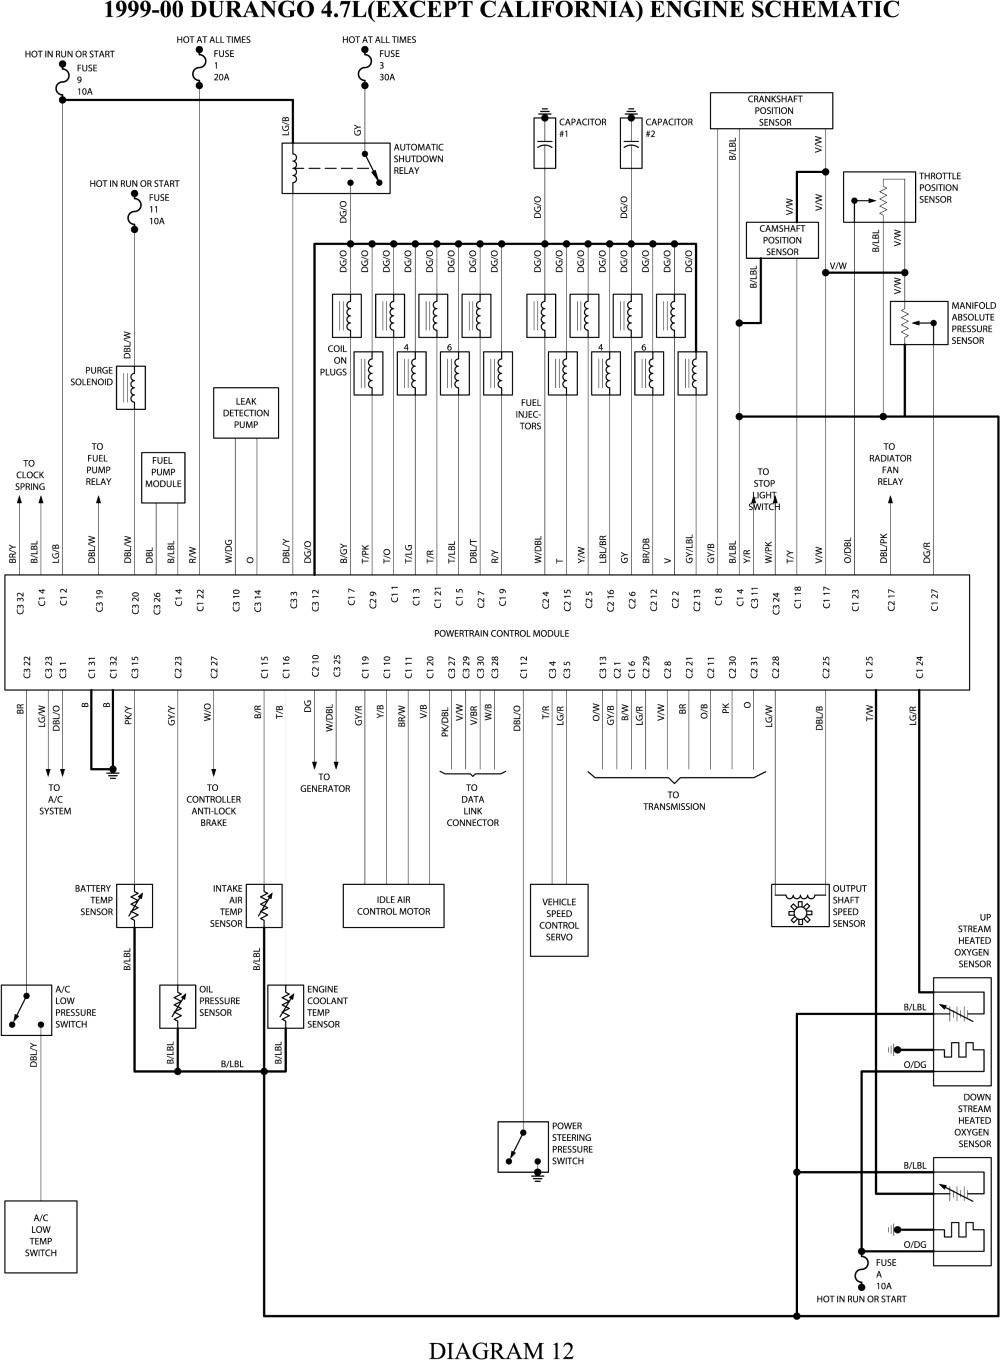 wiring diagram 03 dodge durango - wiring diagram rich-network -  rich-network.piuconzero.it  piuconzero